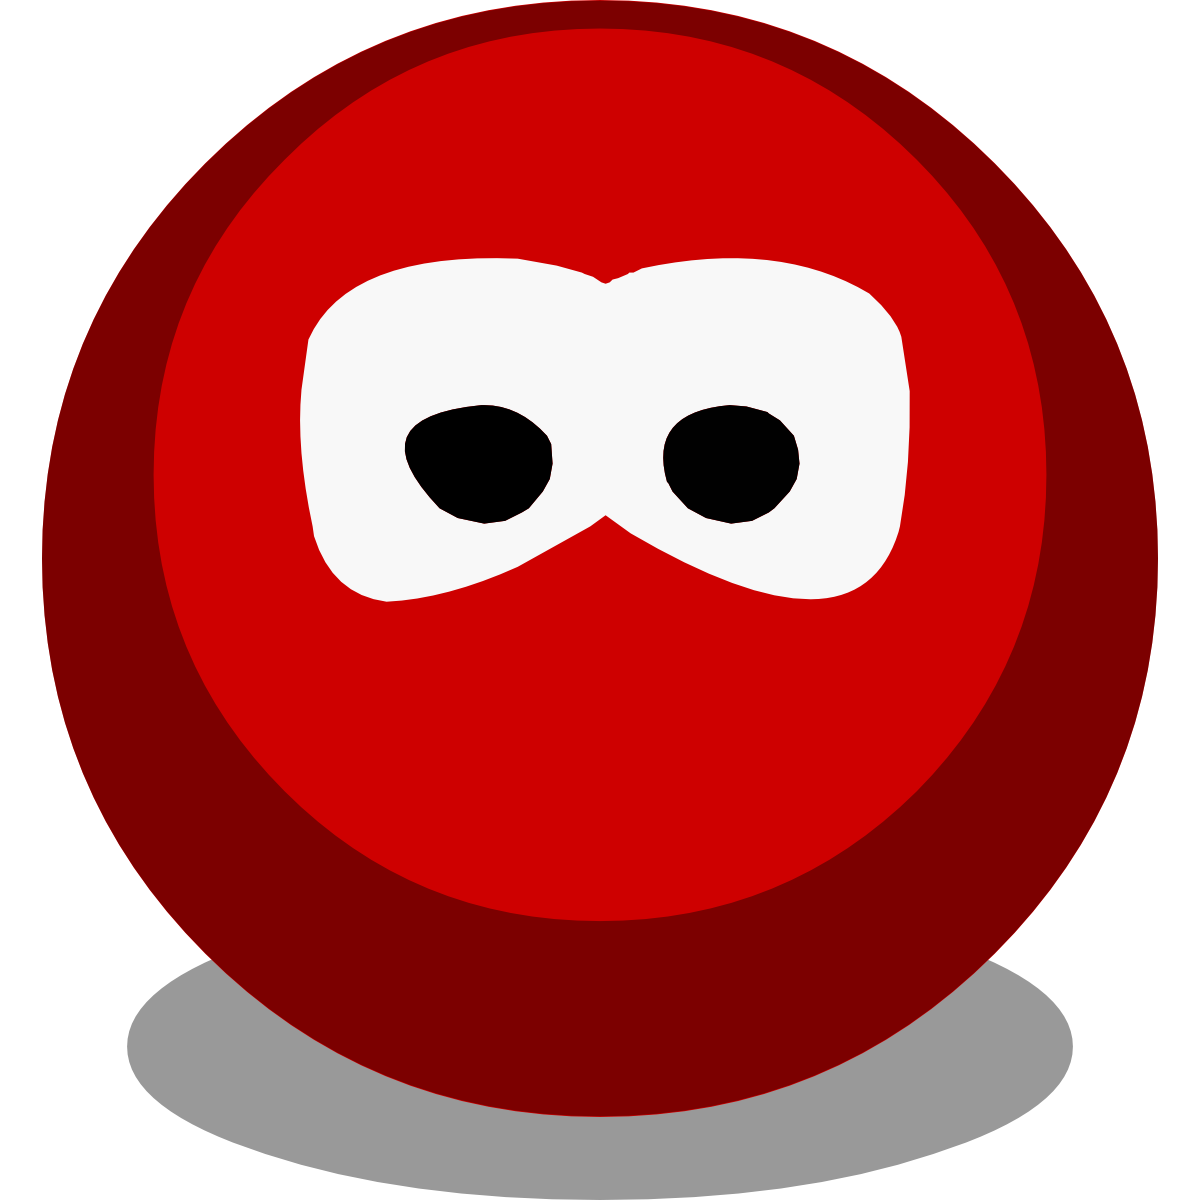 Red color png. Image club penguin wiki